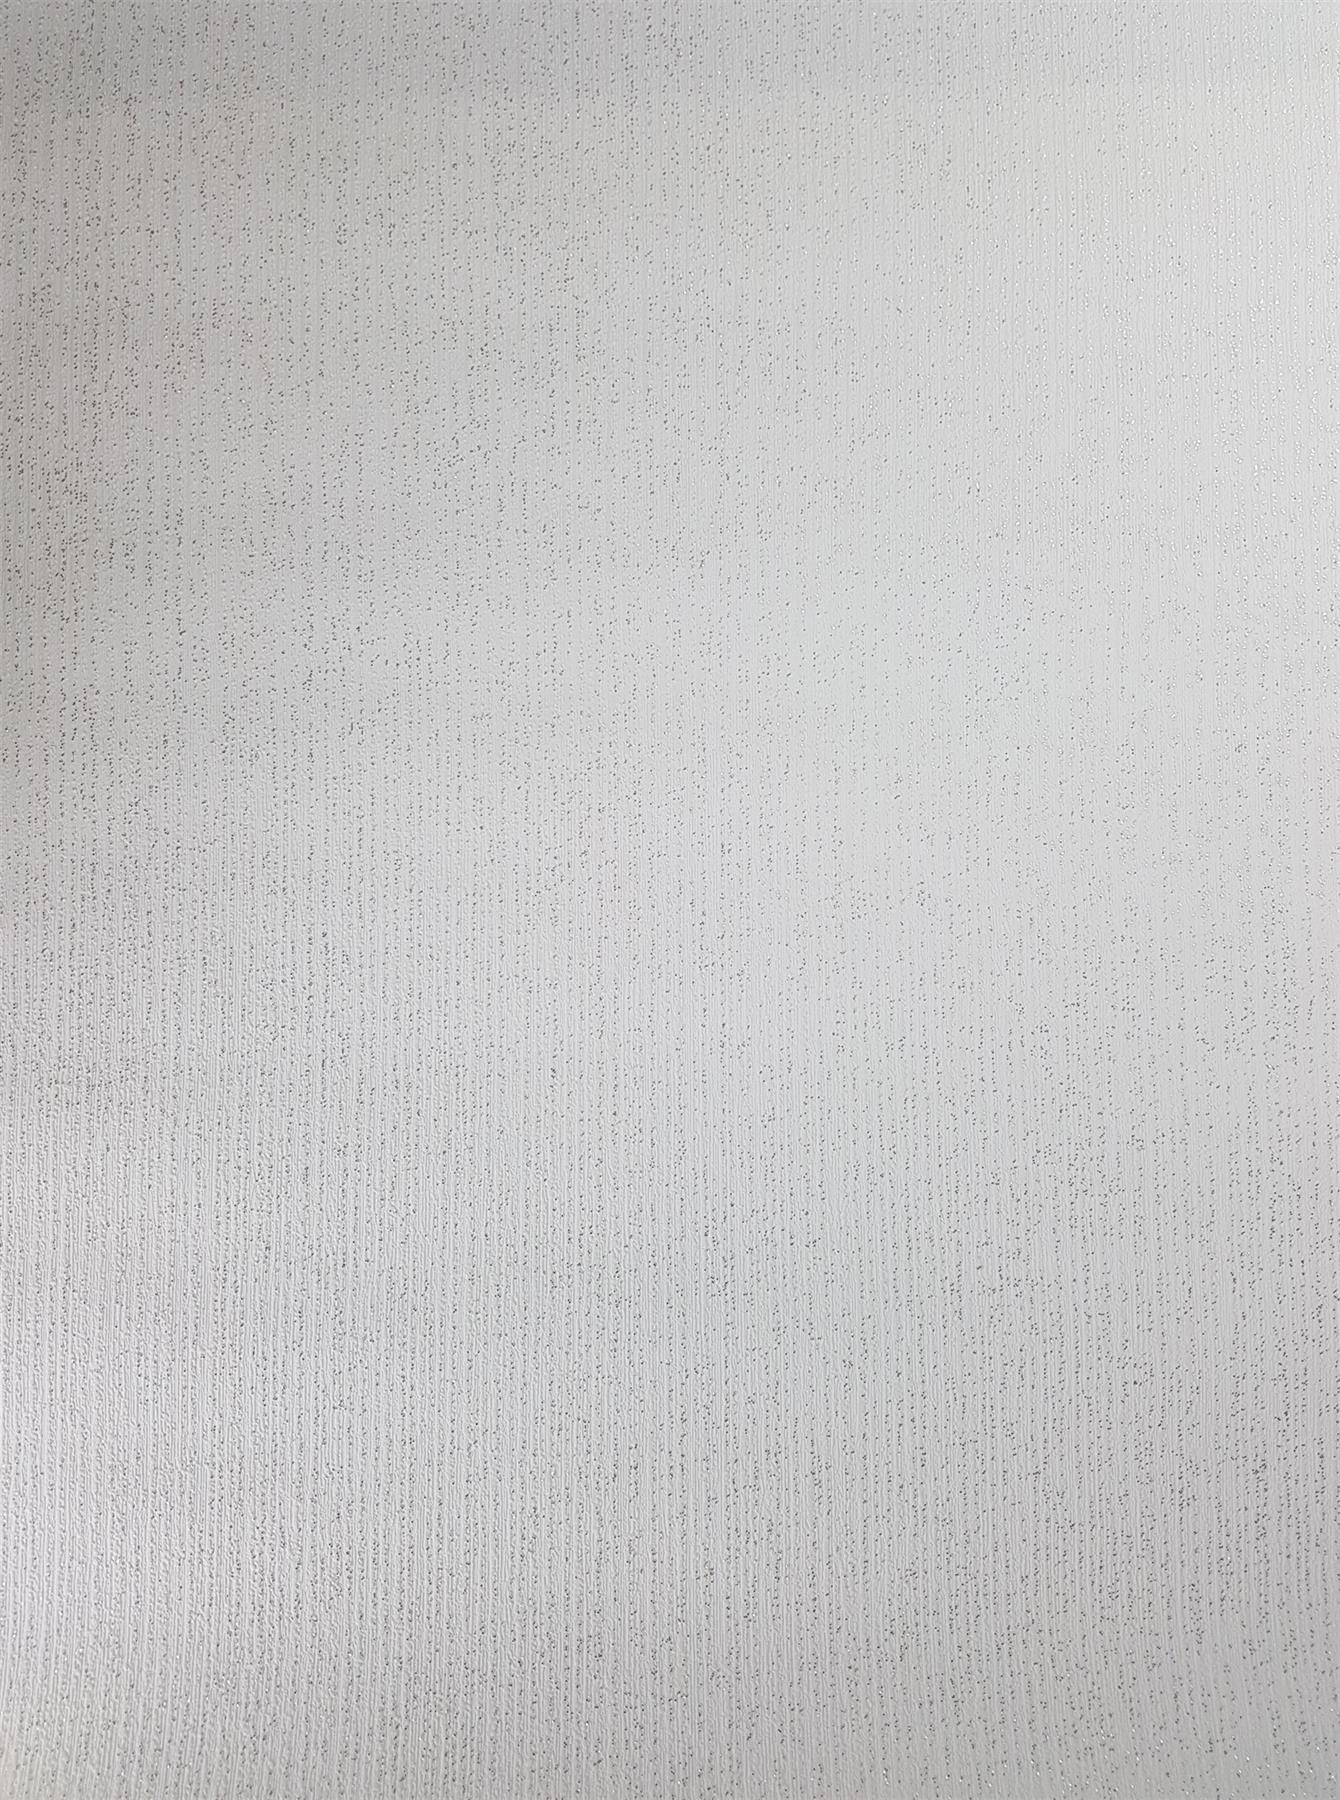 Silver Crushed Stone Wallpaper Textured Plain Paste the Wall Vinyl JC2009-3